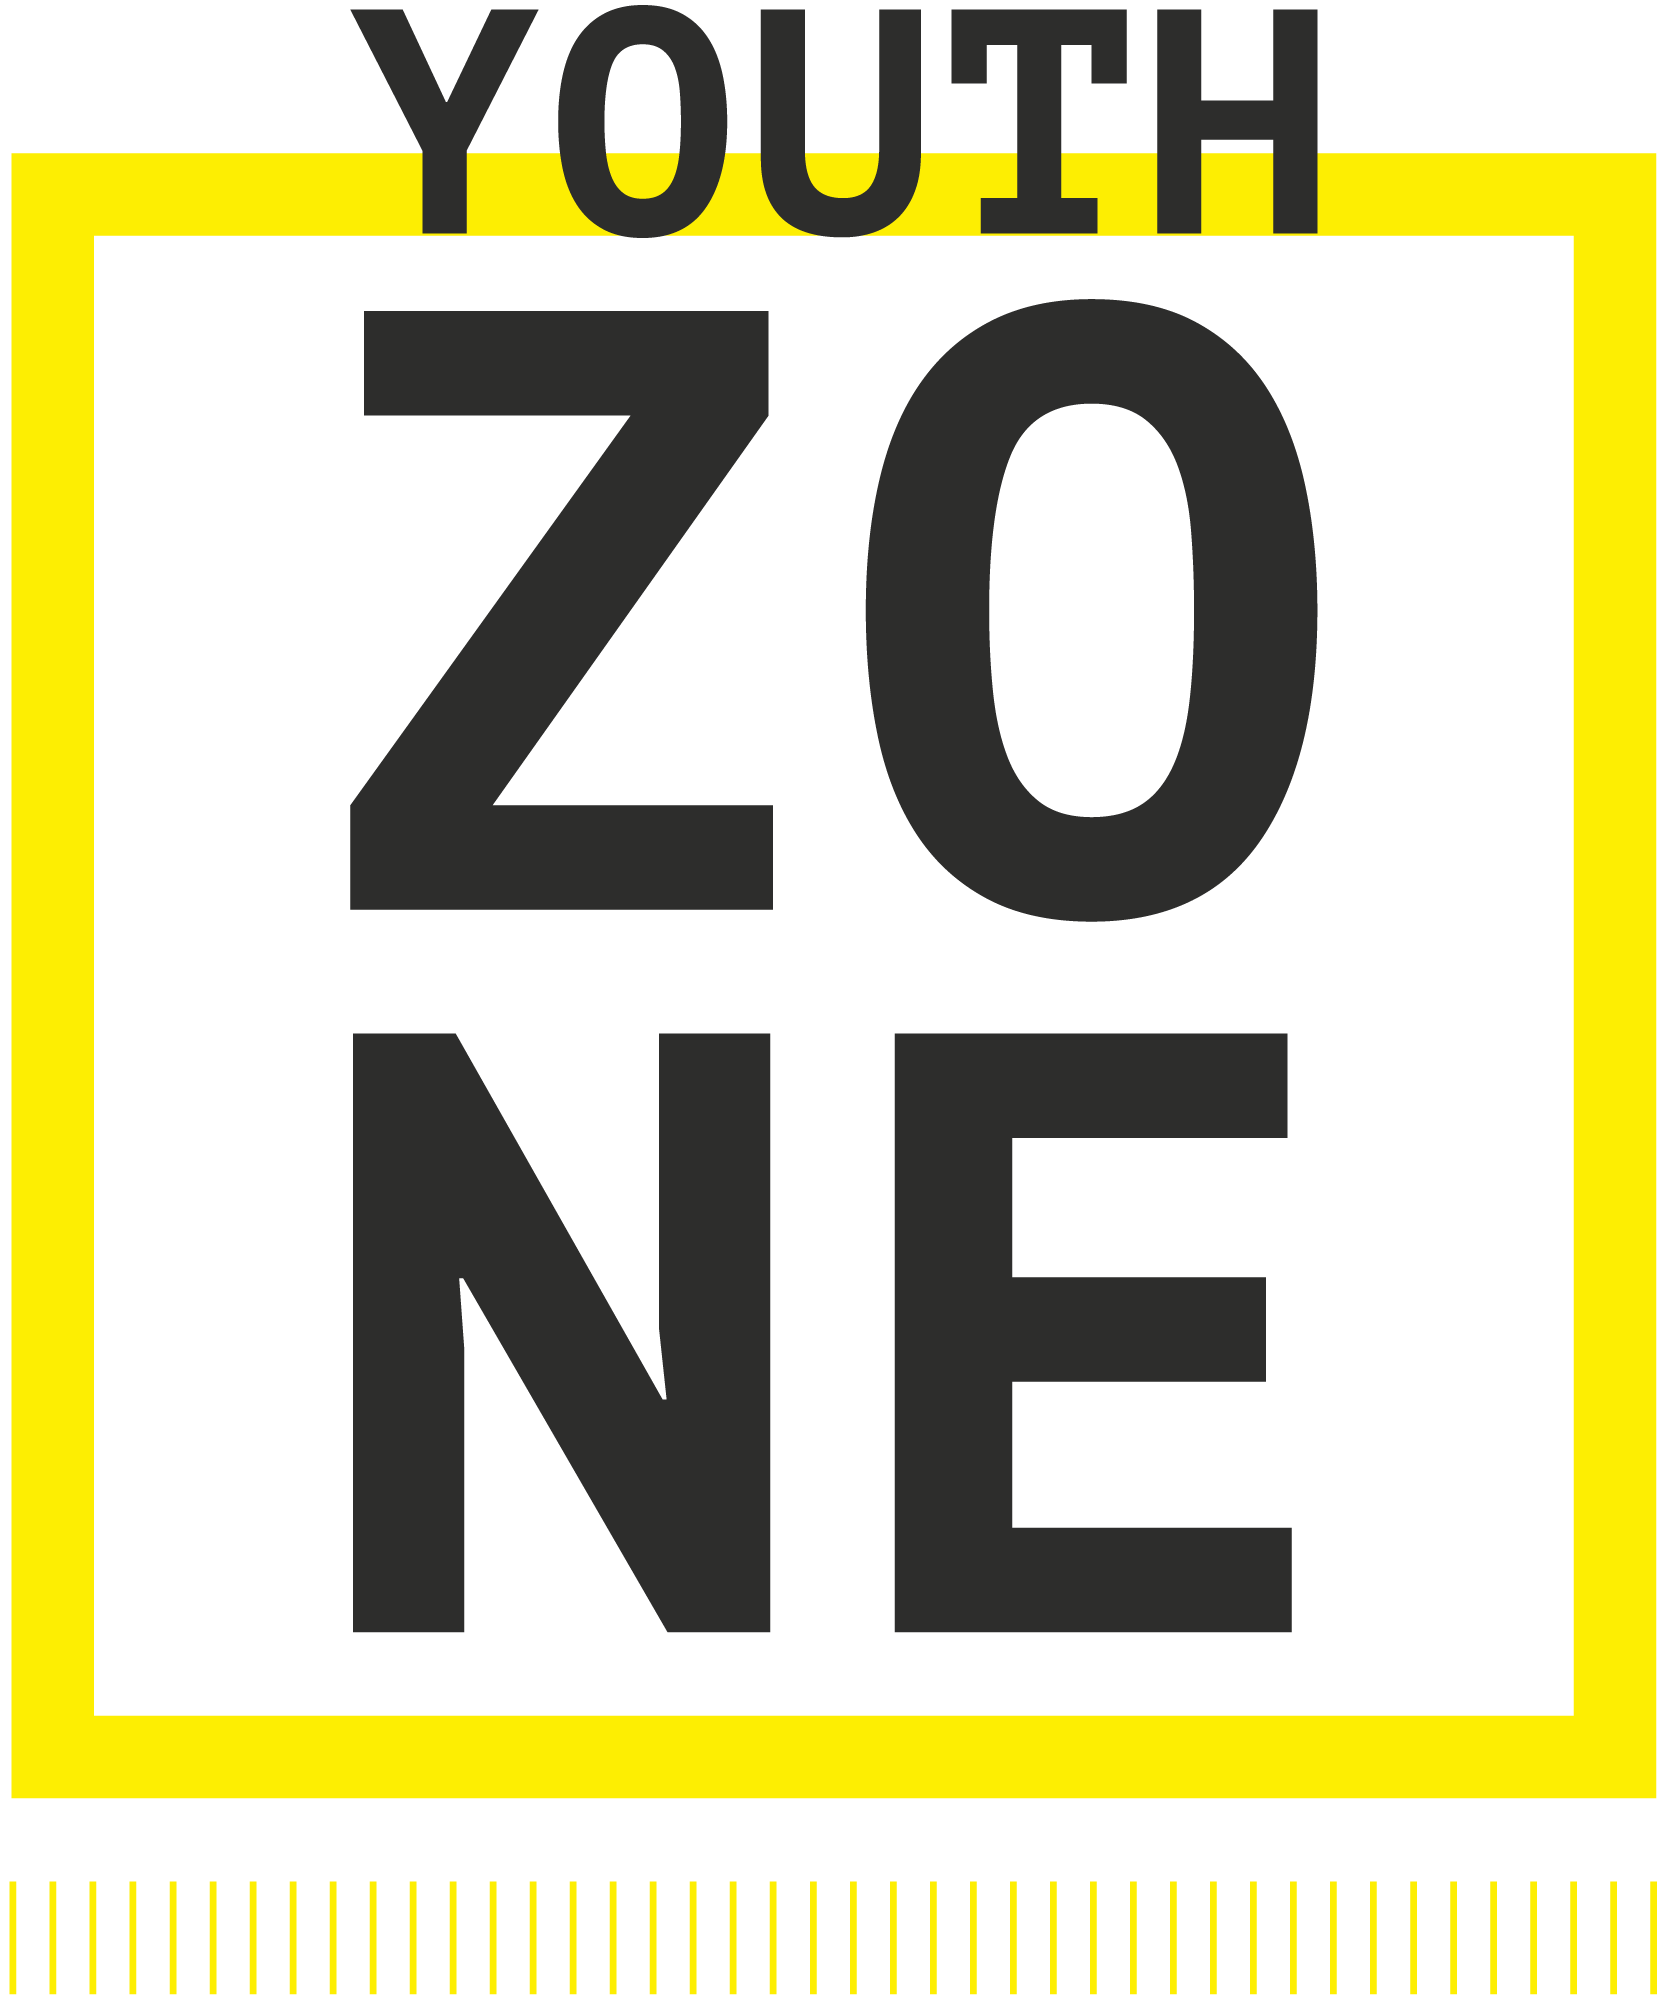 Newham Youth Zone logo